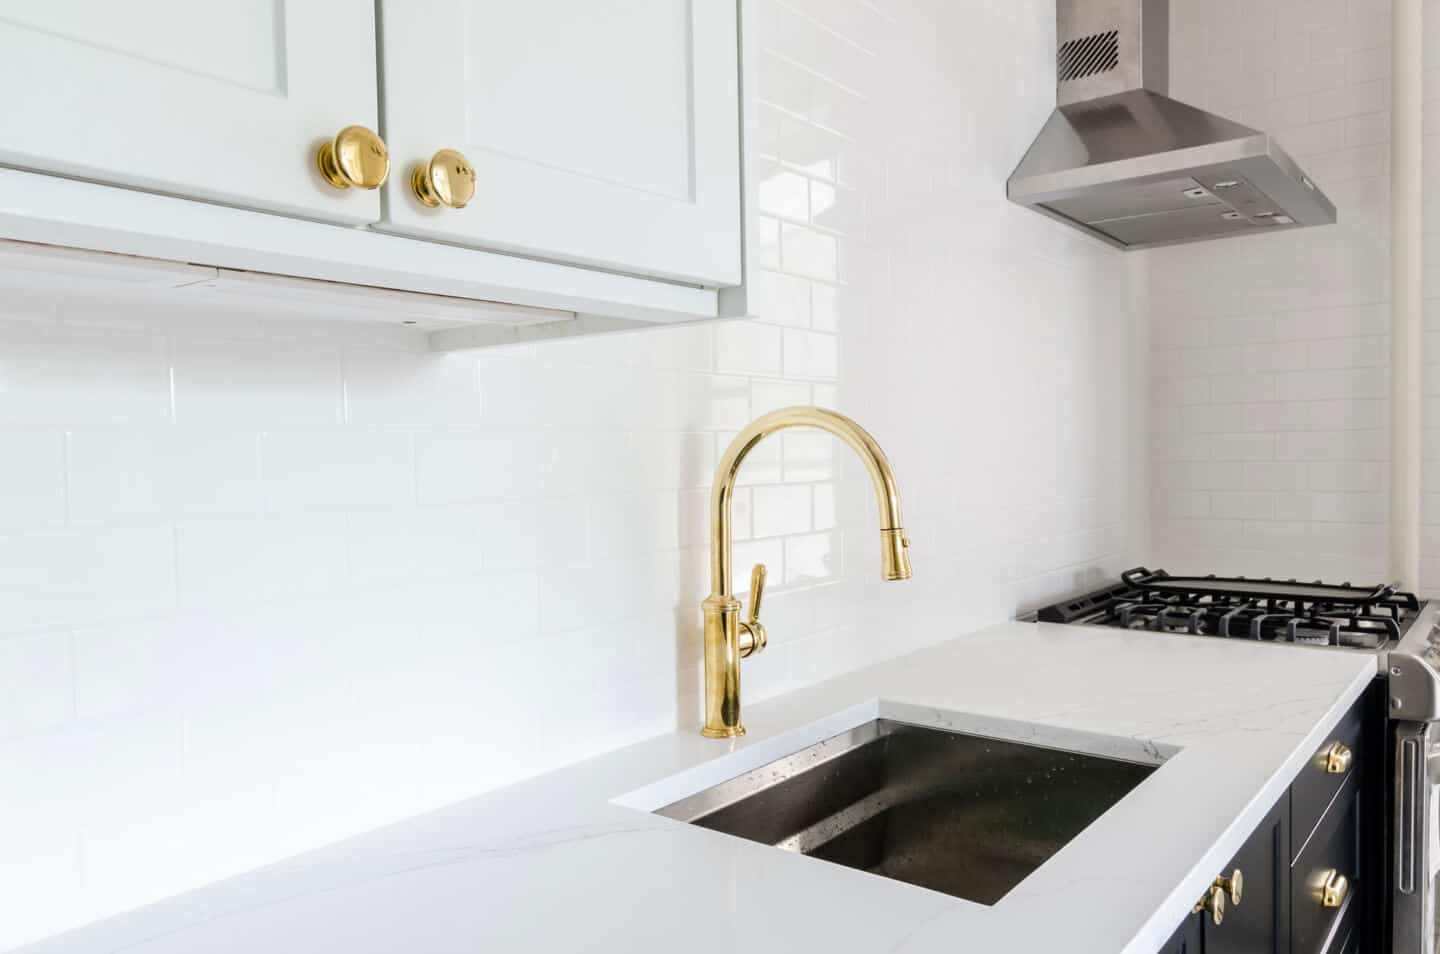 6 Easy Ways to Spruce Up Your Kitchen on a Budget - replace the tap. Image of a brass tap on a white countertop with white wall tiles behind.